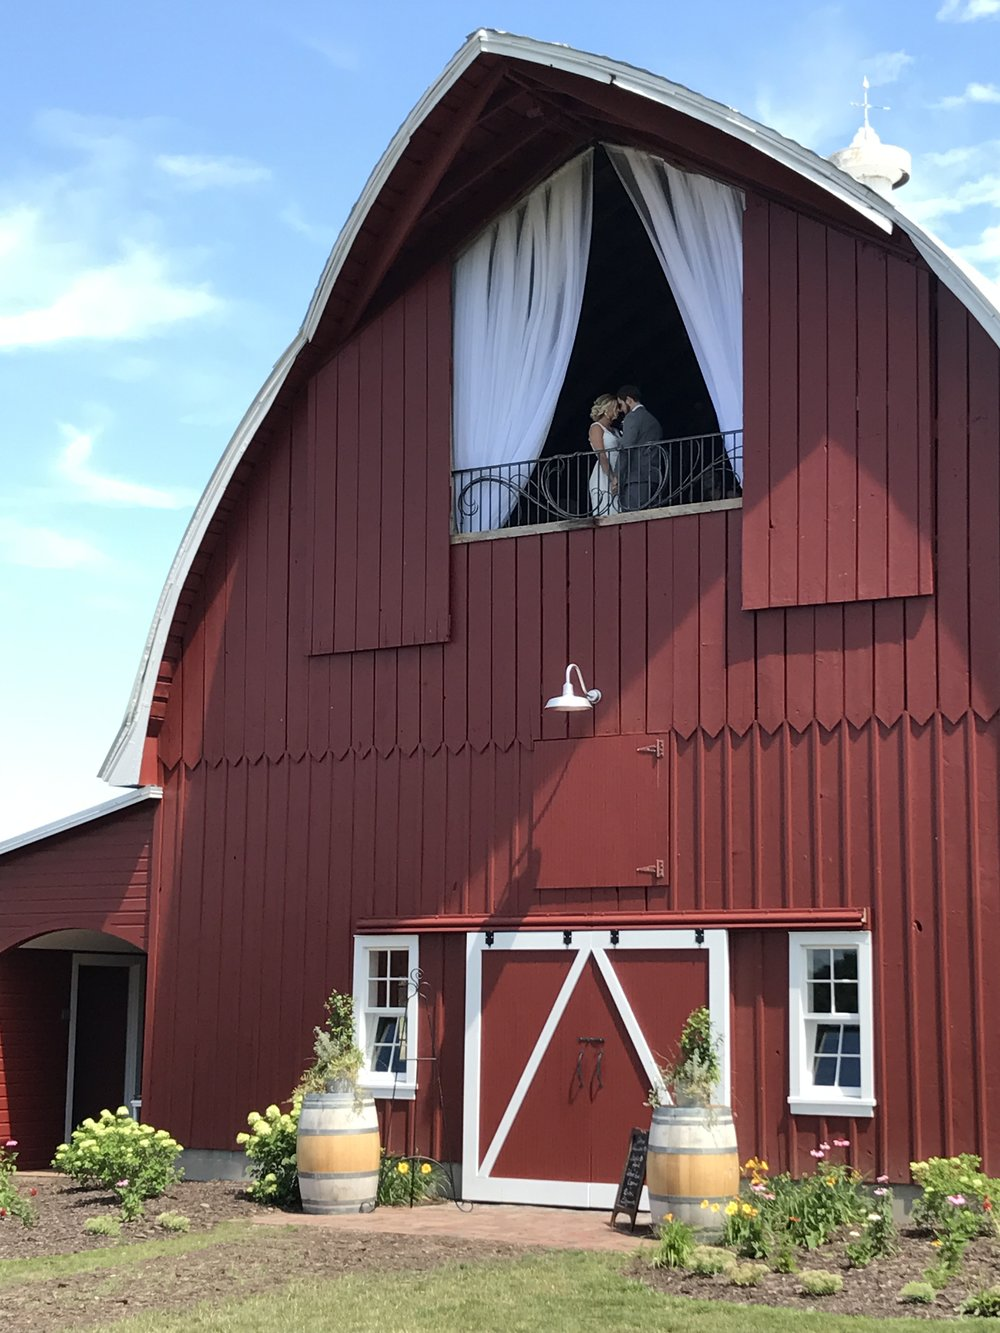 Dramatic draping hung in a classic red Minnesota barn for wedding ceremony / draping